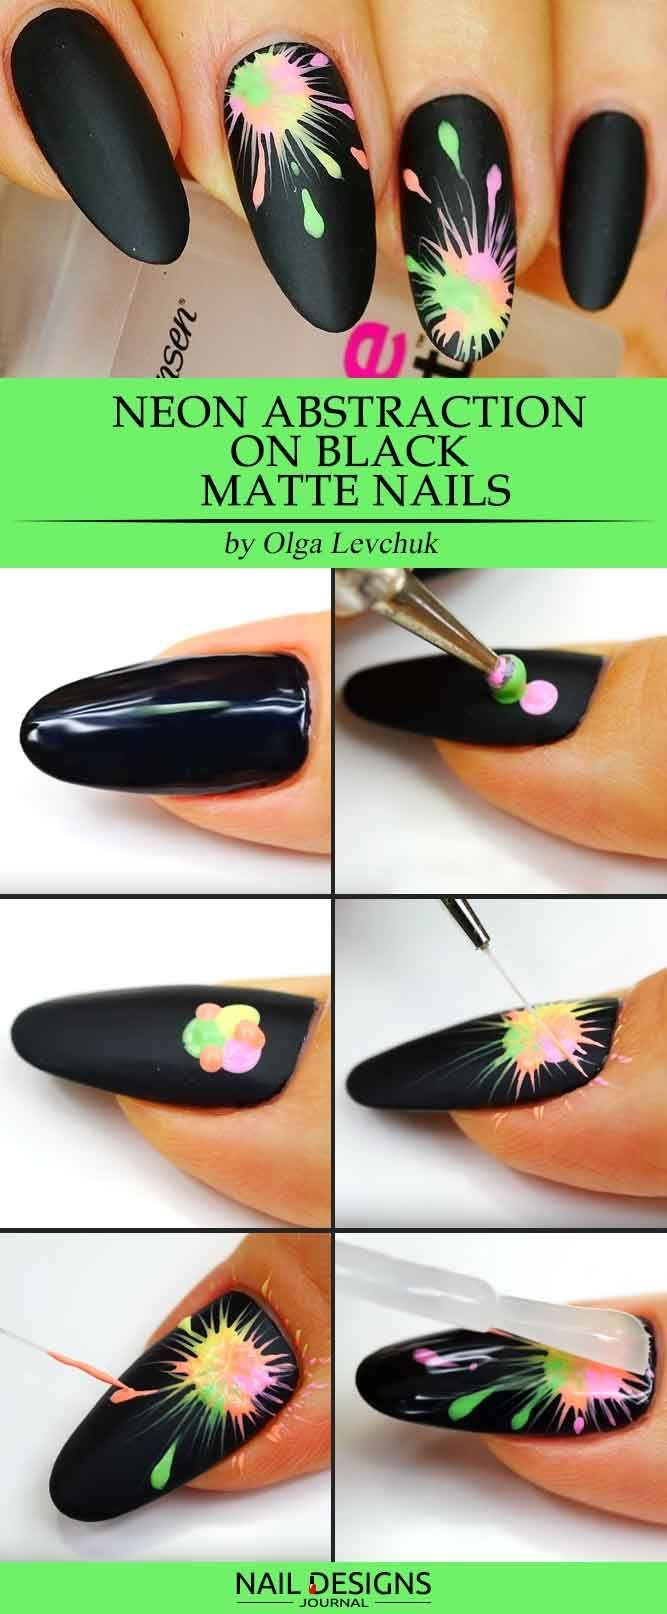 Carlybow Nails: Fall Nail Designs-Multi-colored Splashes On Black. Follow